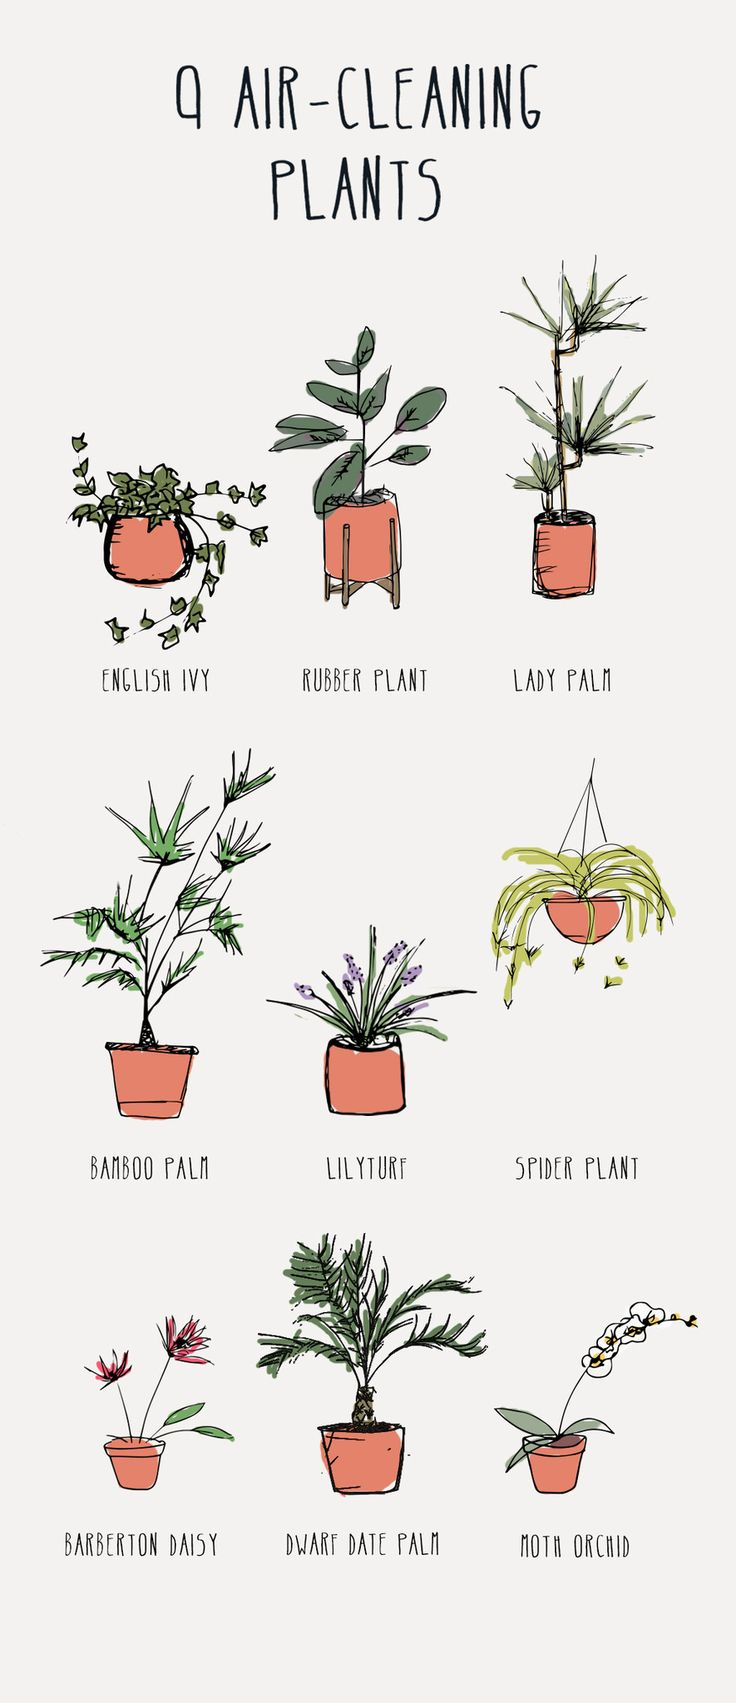 9 Best Air-Cleaning Plants